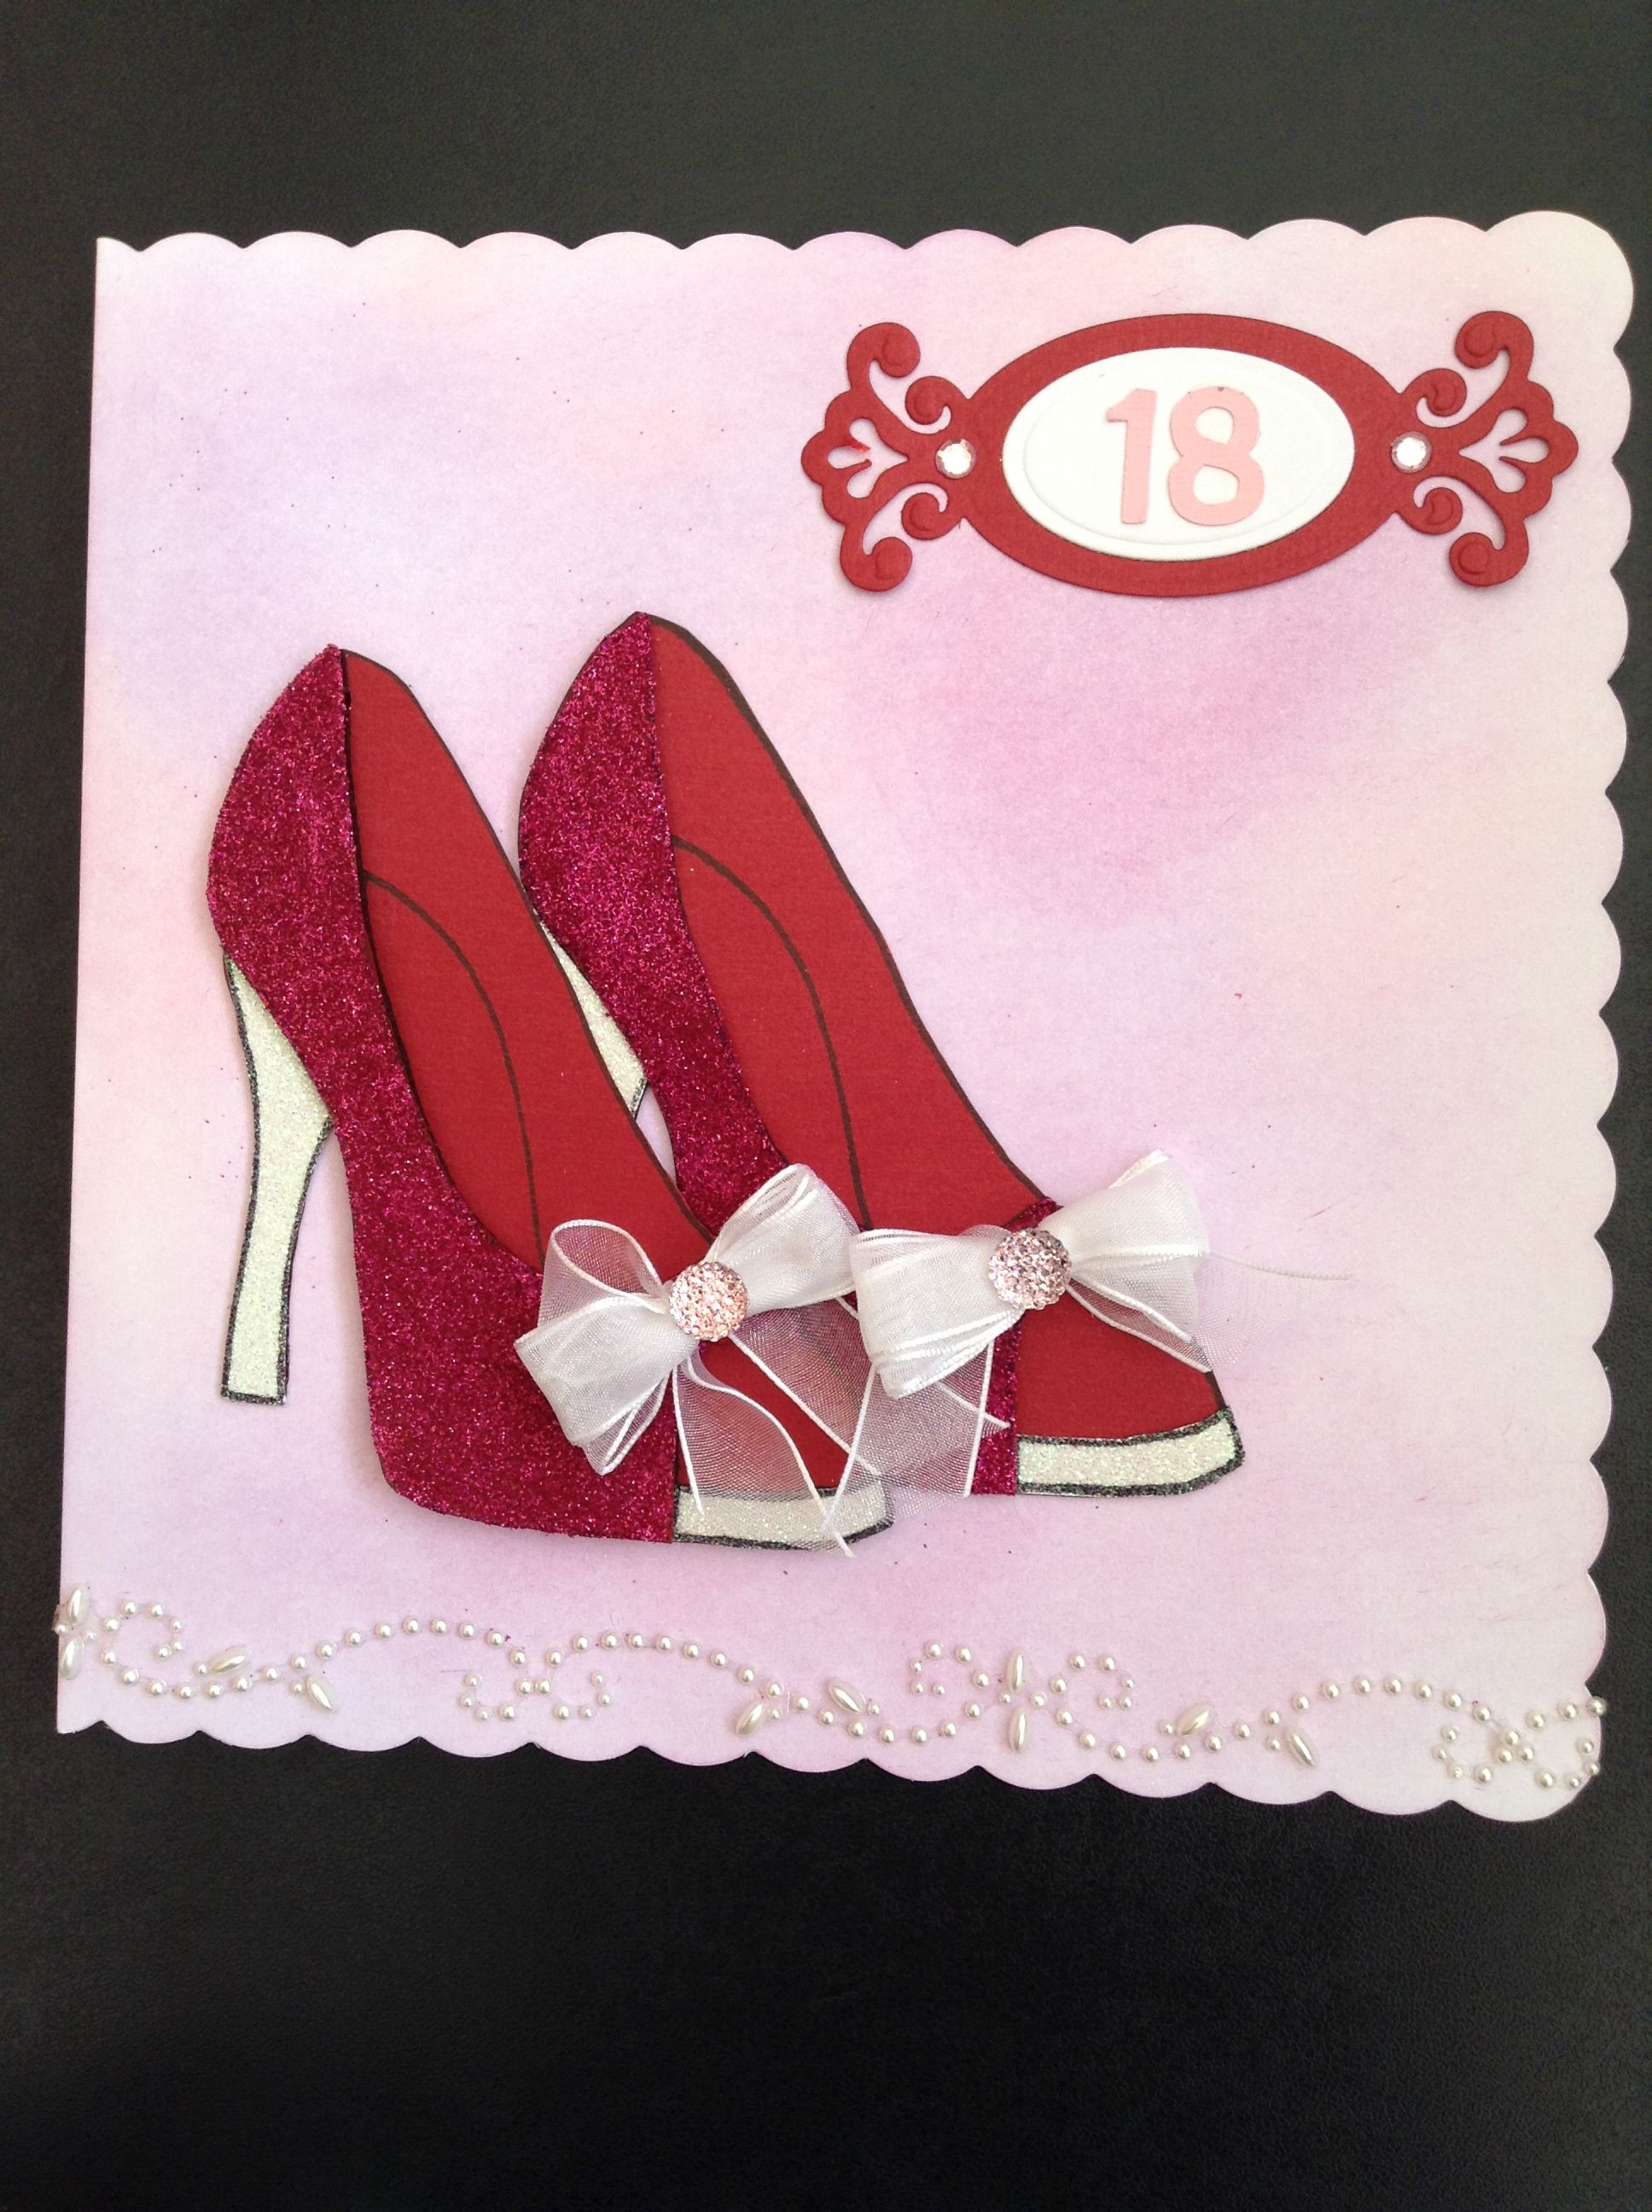 Another Stamps By Chloe Stamp Used For My Daughter S 18th Birthday